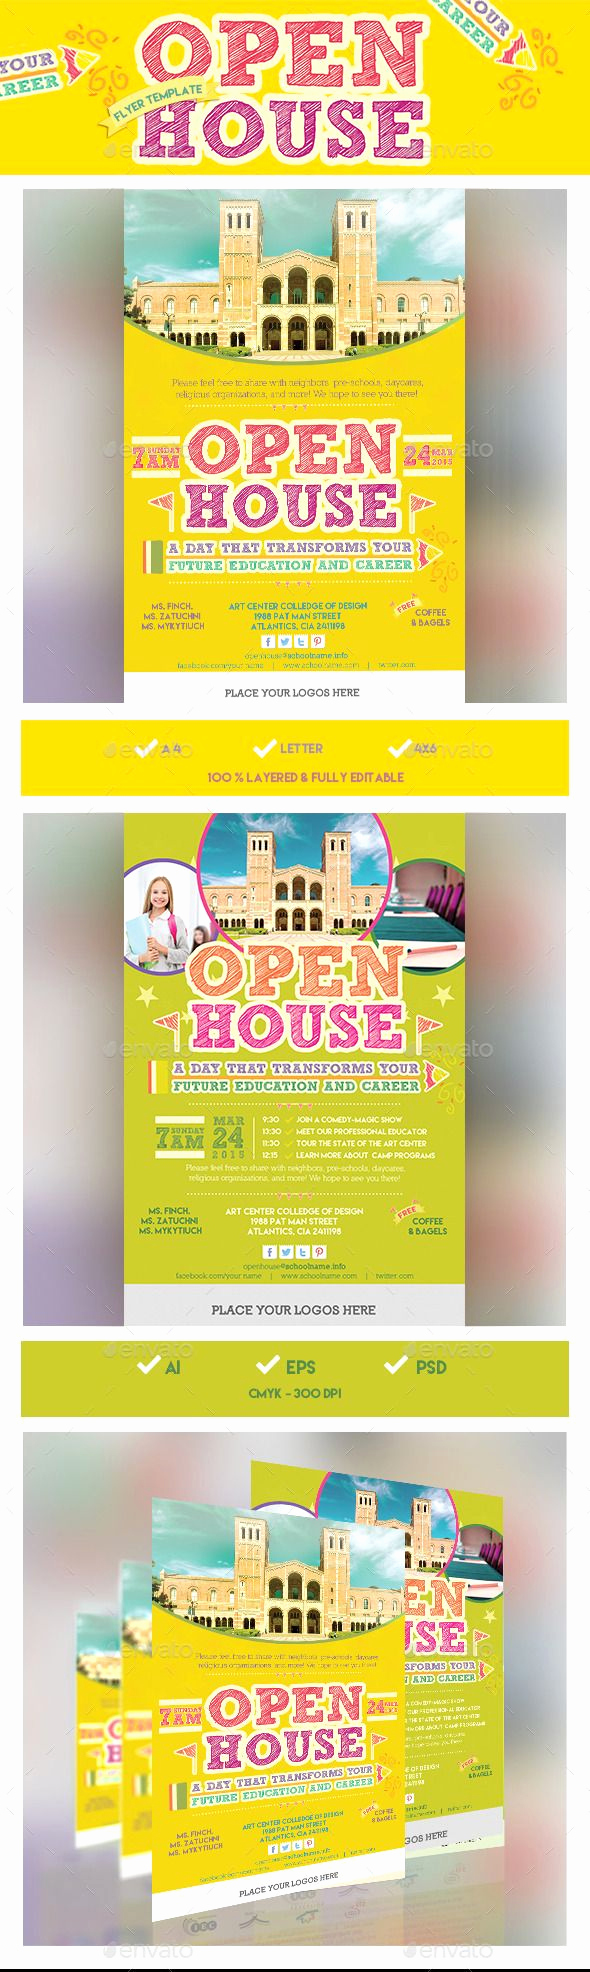 Open House Flyers Template New 1000 Ideas About Open House Invitation On Pinterest